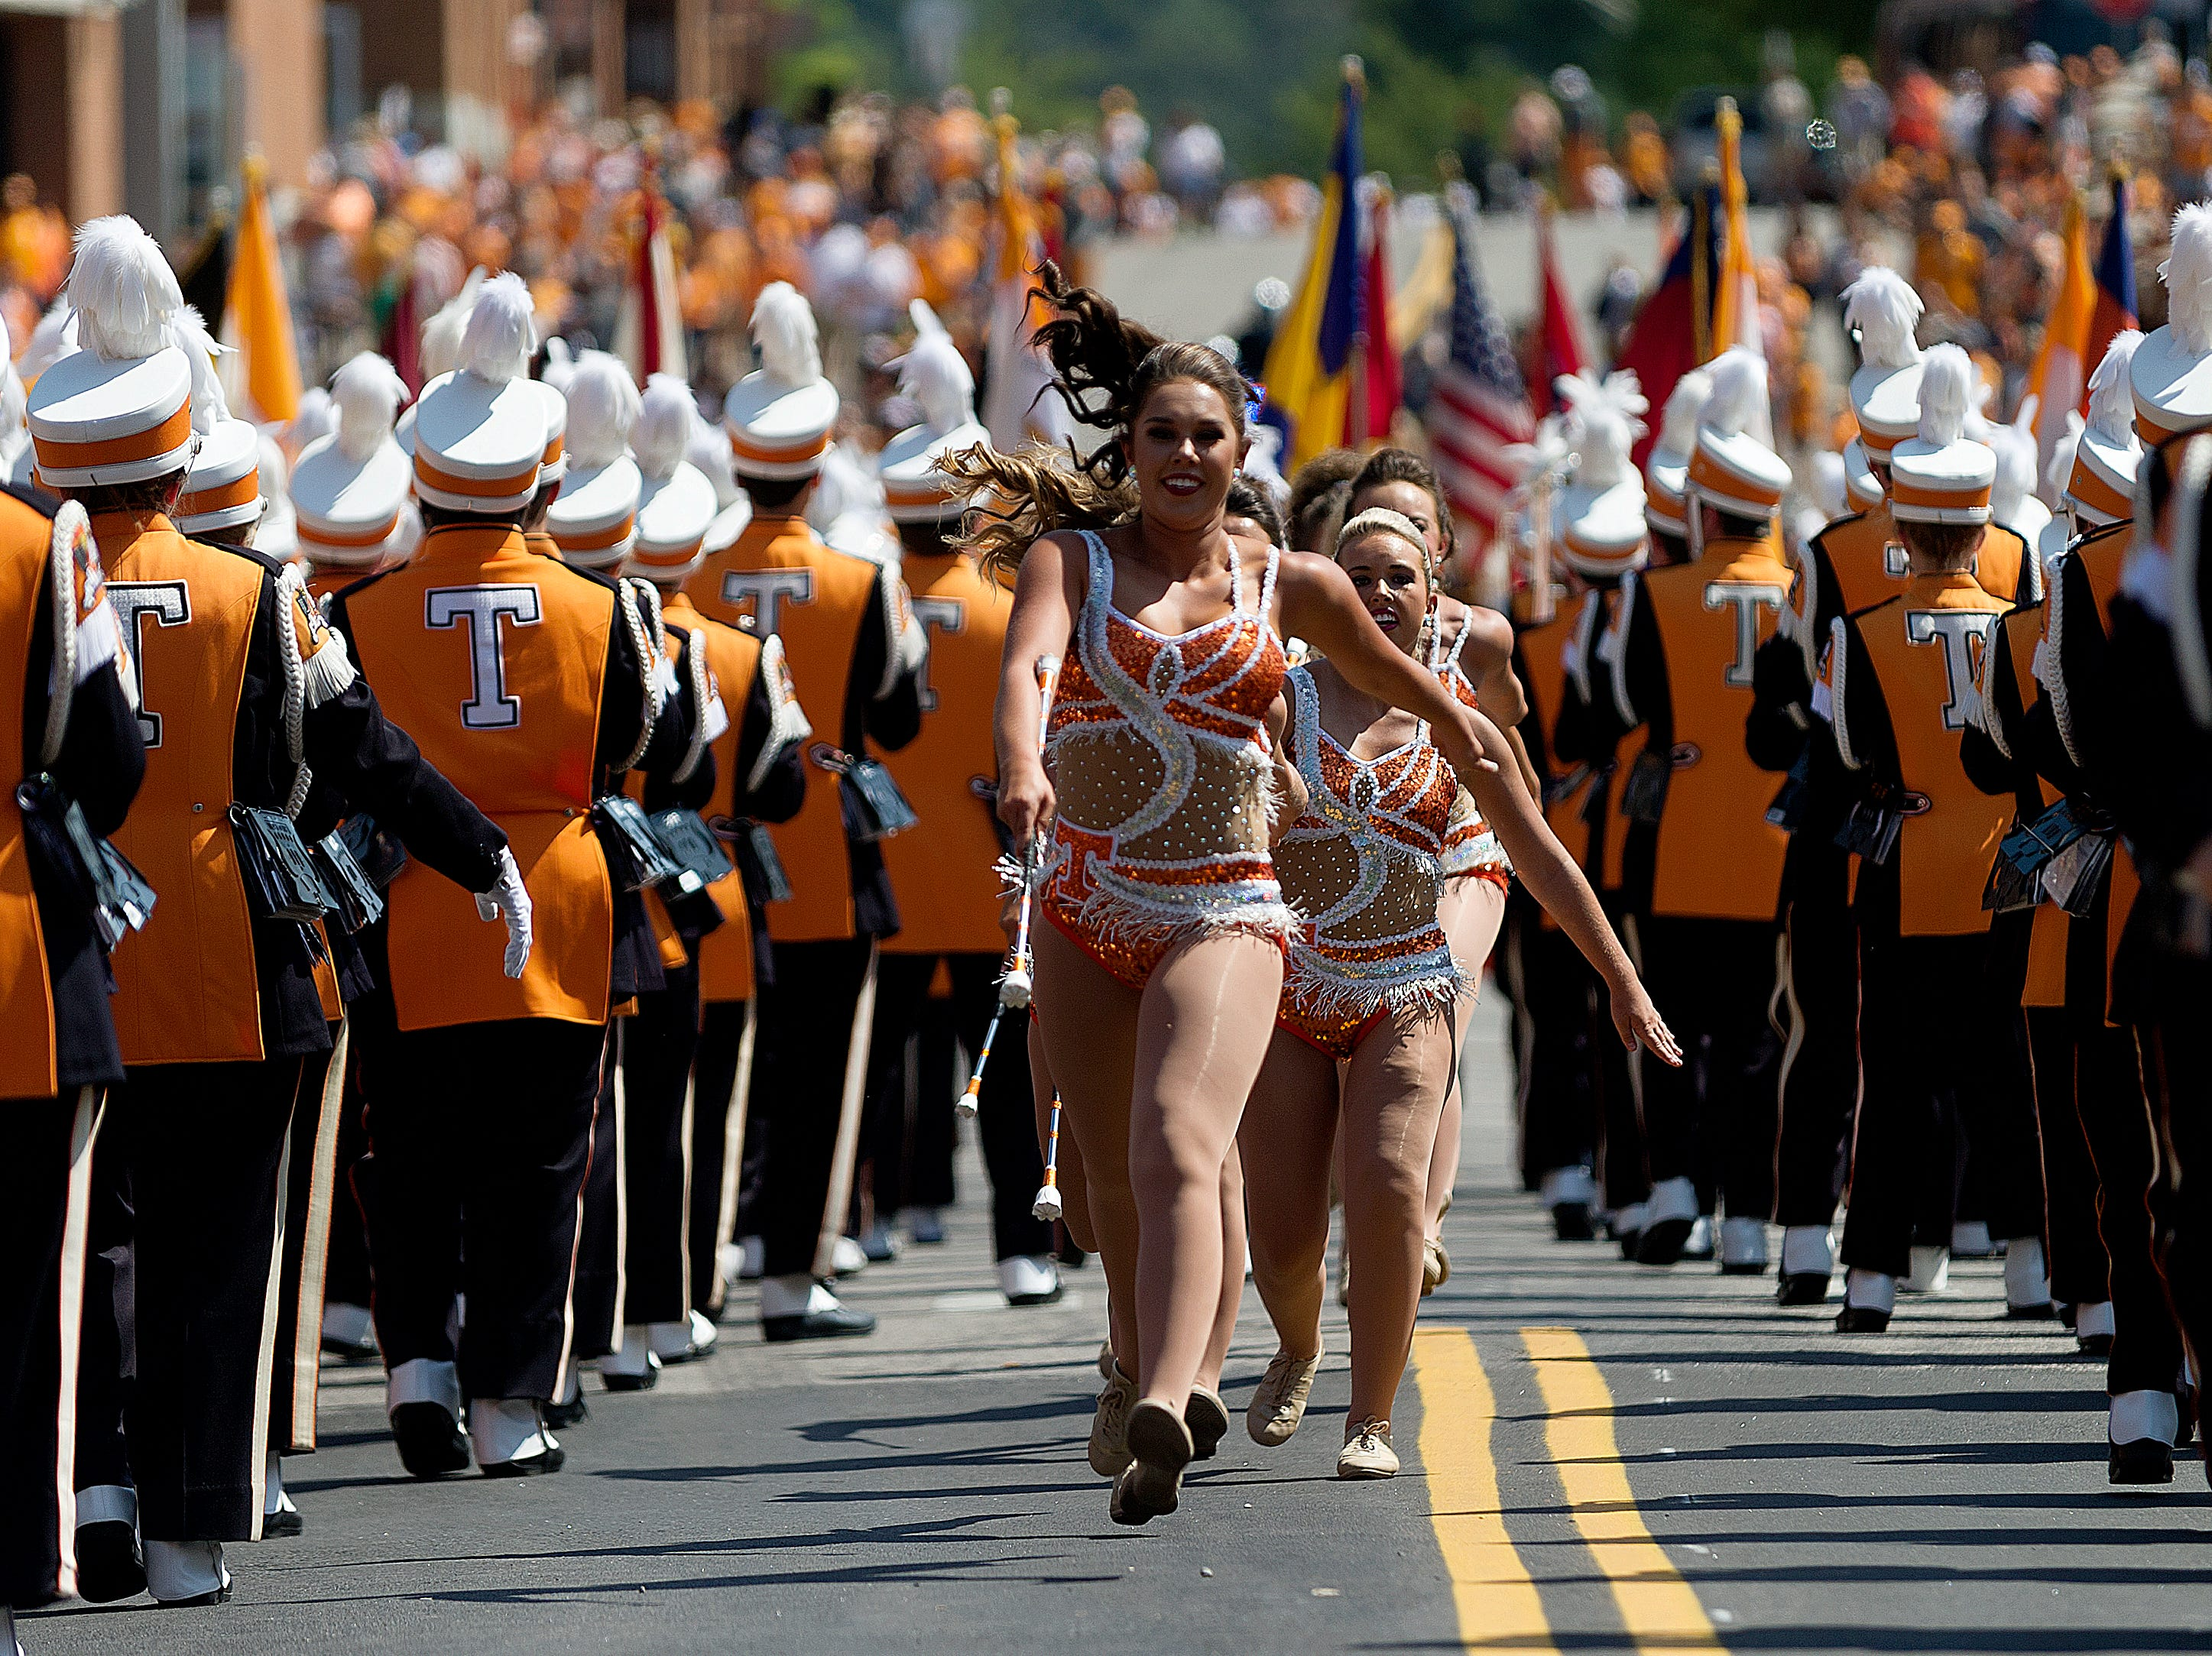 The Majorettes perform during the Tennessee Volunteers vs Indiana State Sycamores game at Neyland Stadium in Knoxville, Tennessee on Saturday, September 9, 2017.